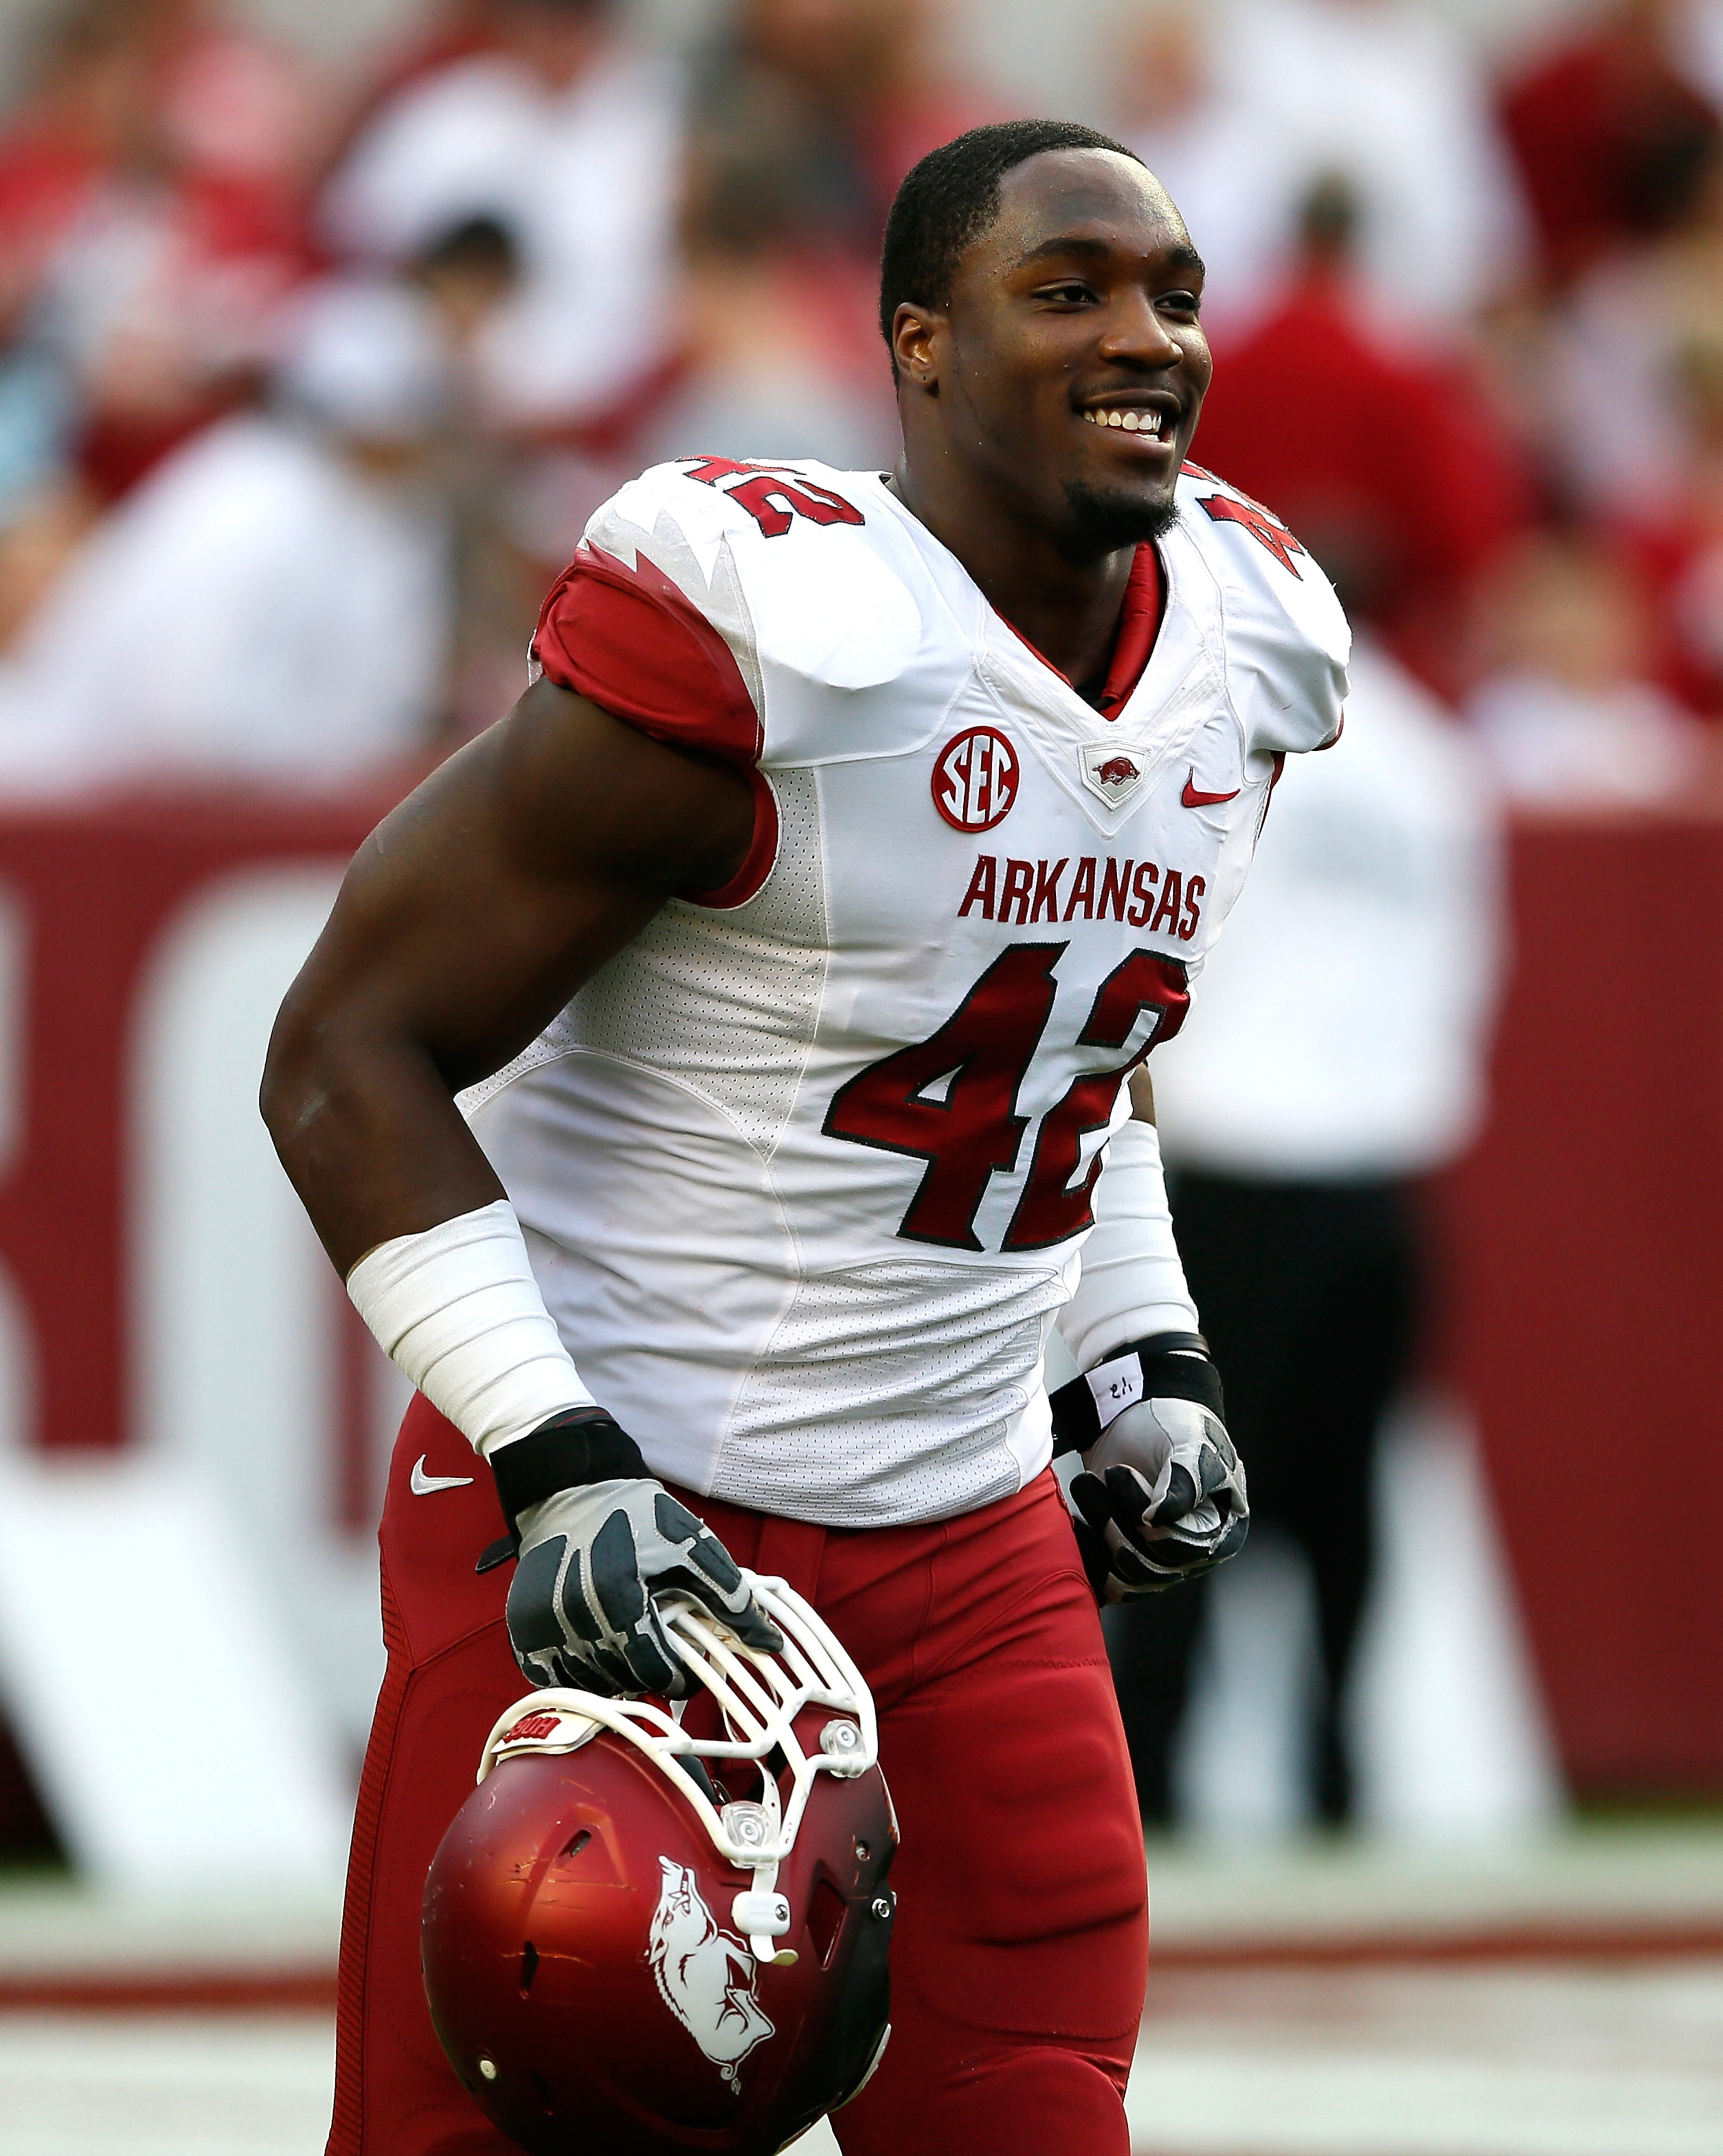 Chris Smith proved to be an under-the-radar jewel in the 2010 class.